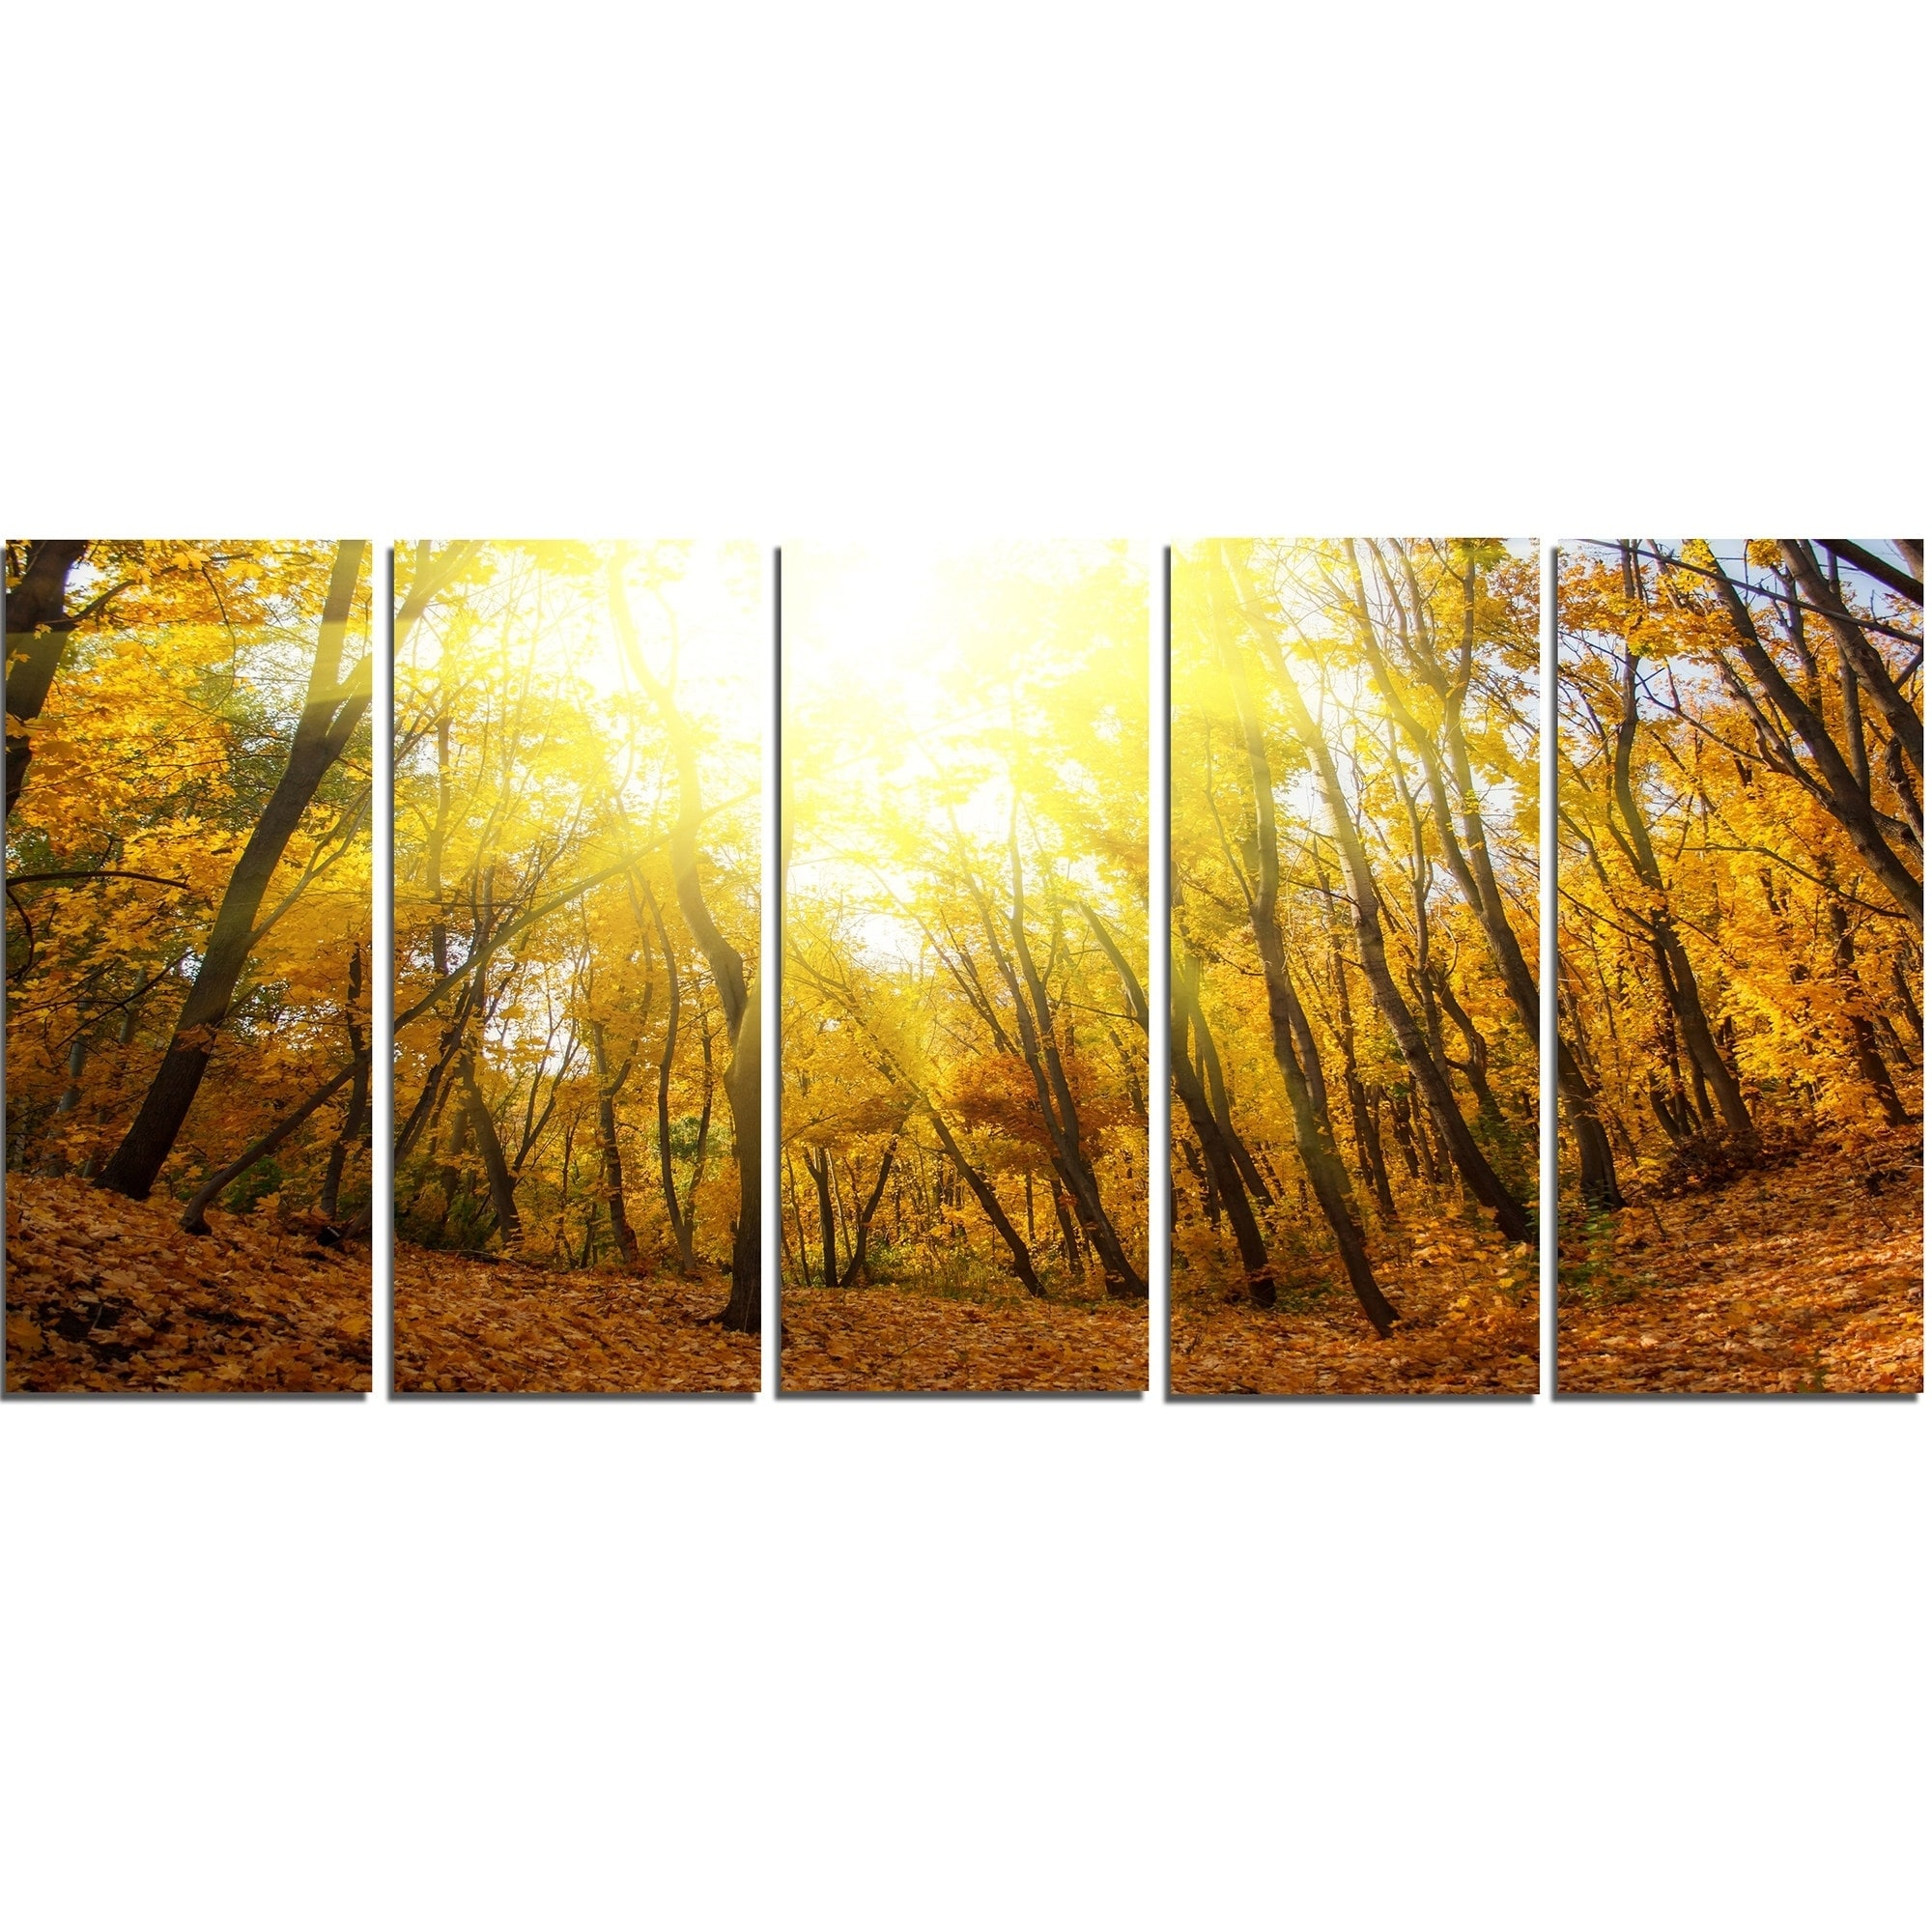 Outstanding Autumn Wall Decor Image Collection - The Wall Art ...